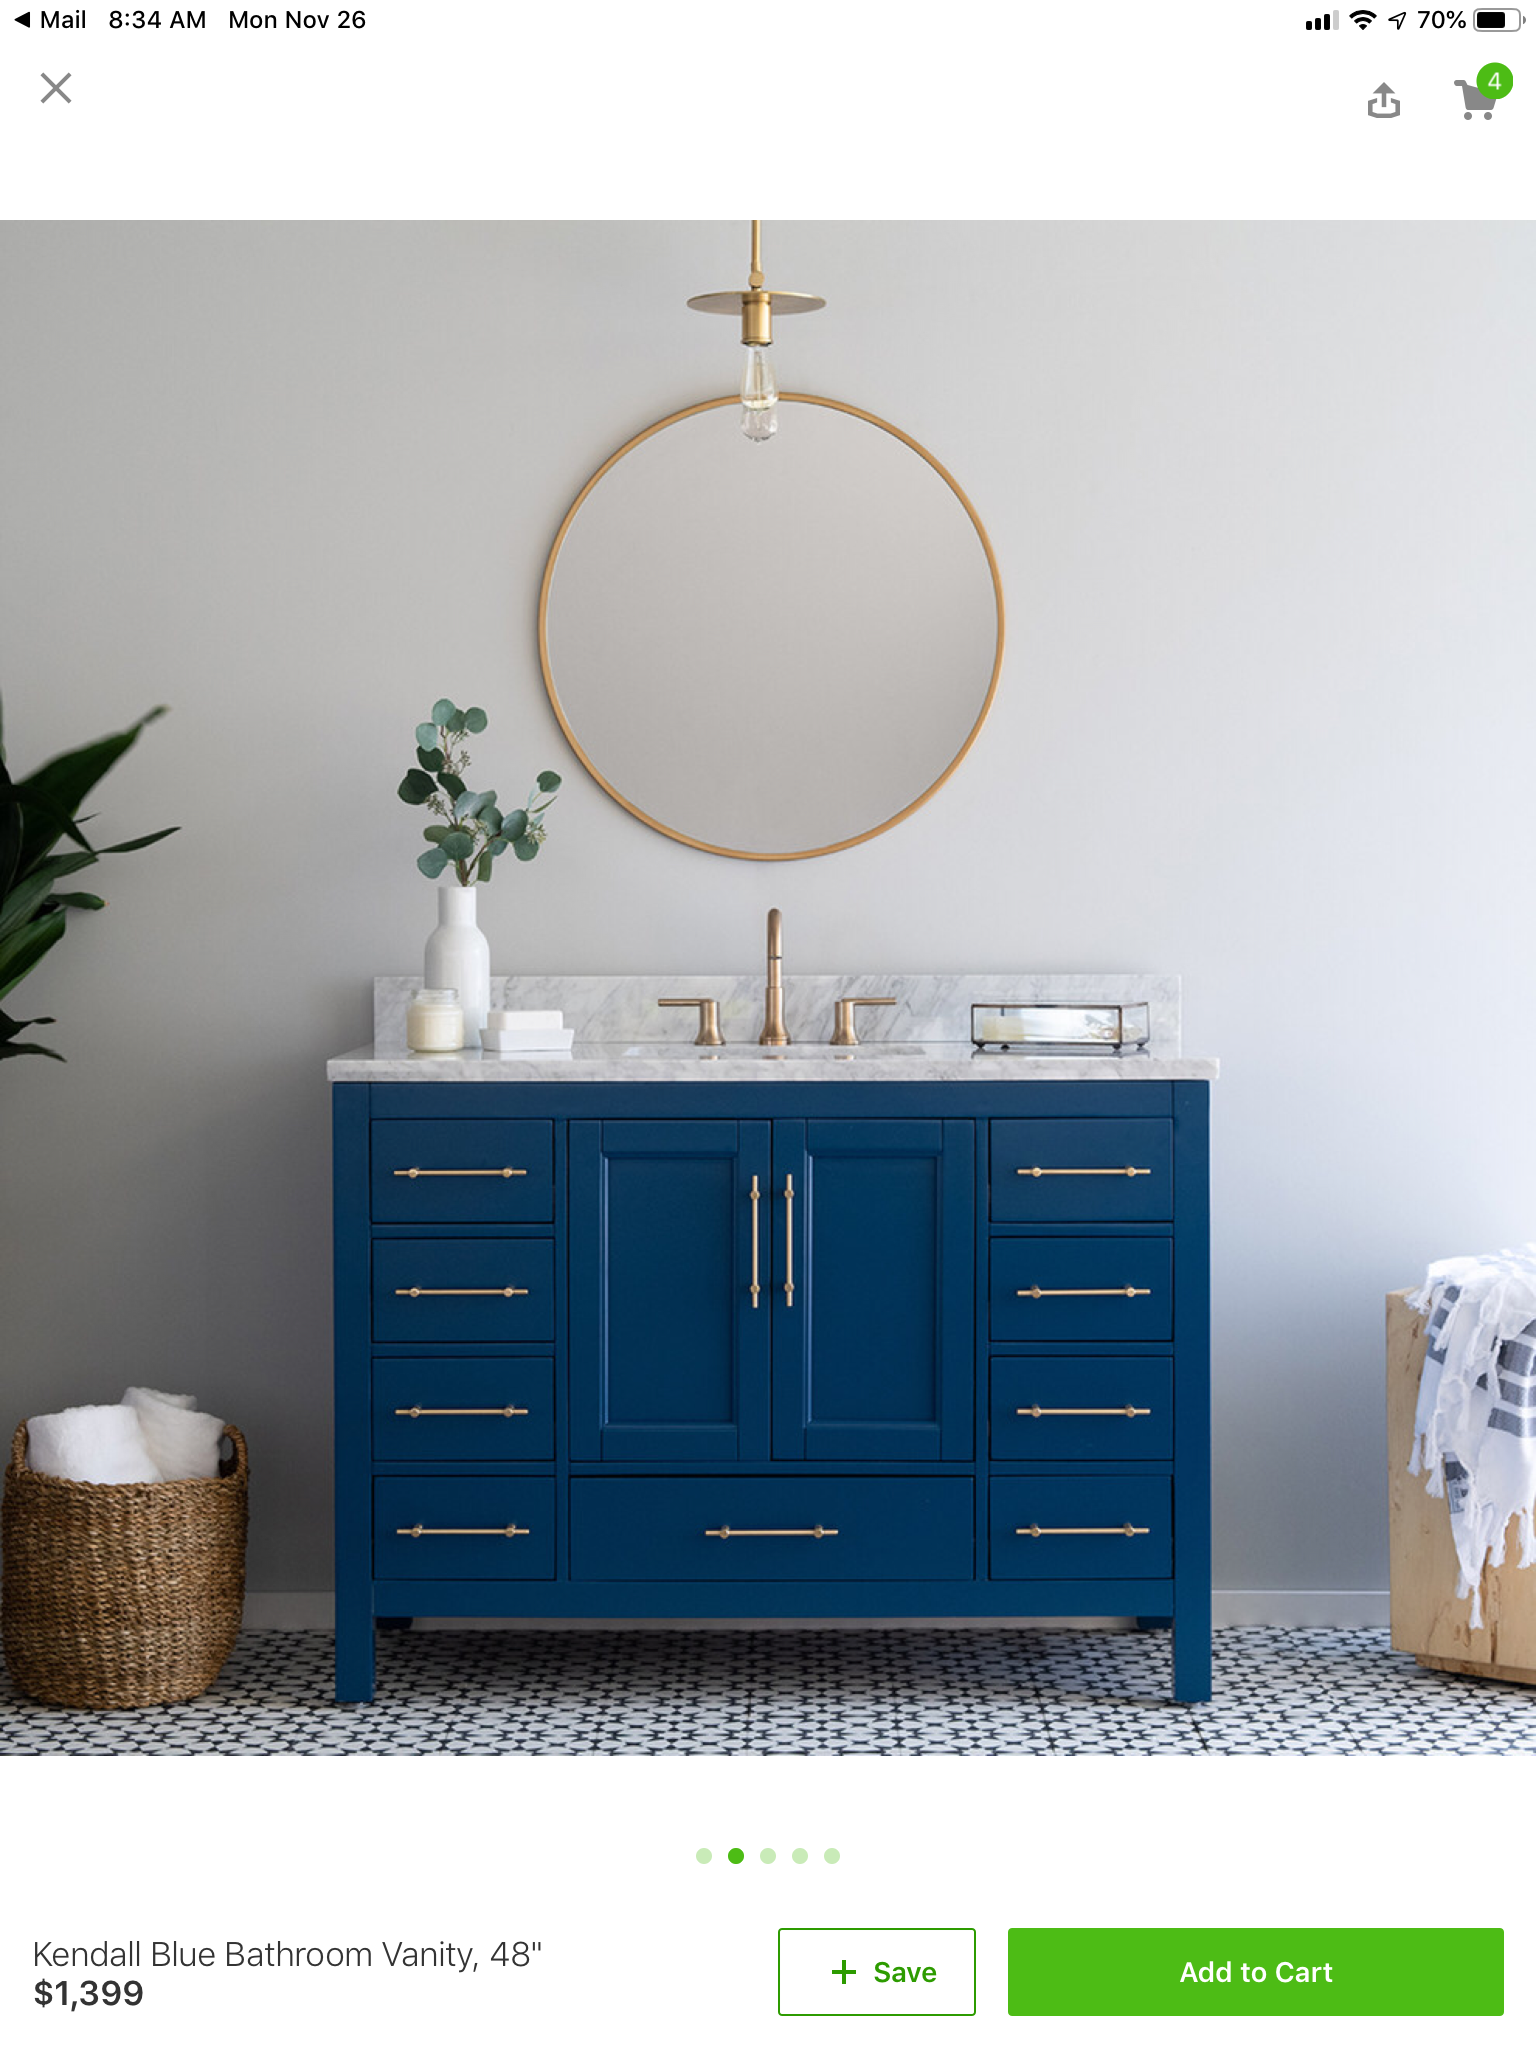 the best attitude 87d07 1ada0 Image result for kendall blue bathroom vanity 48 | Cabin ...